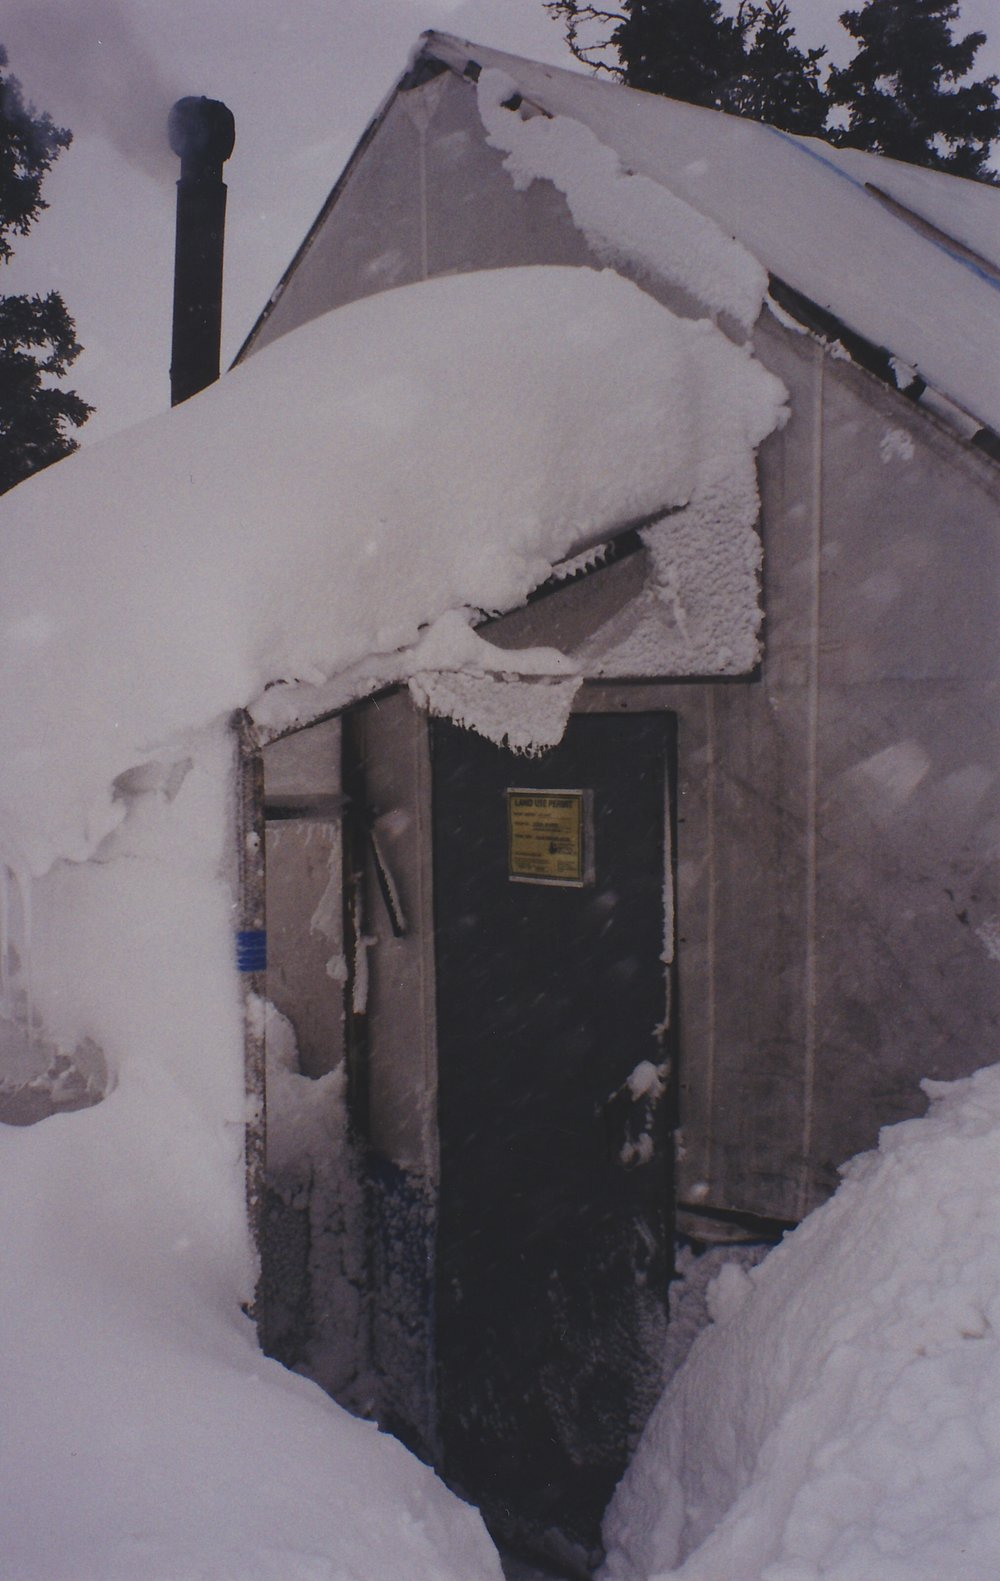 Cook tent entrance during a snow storm.